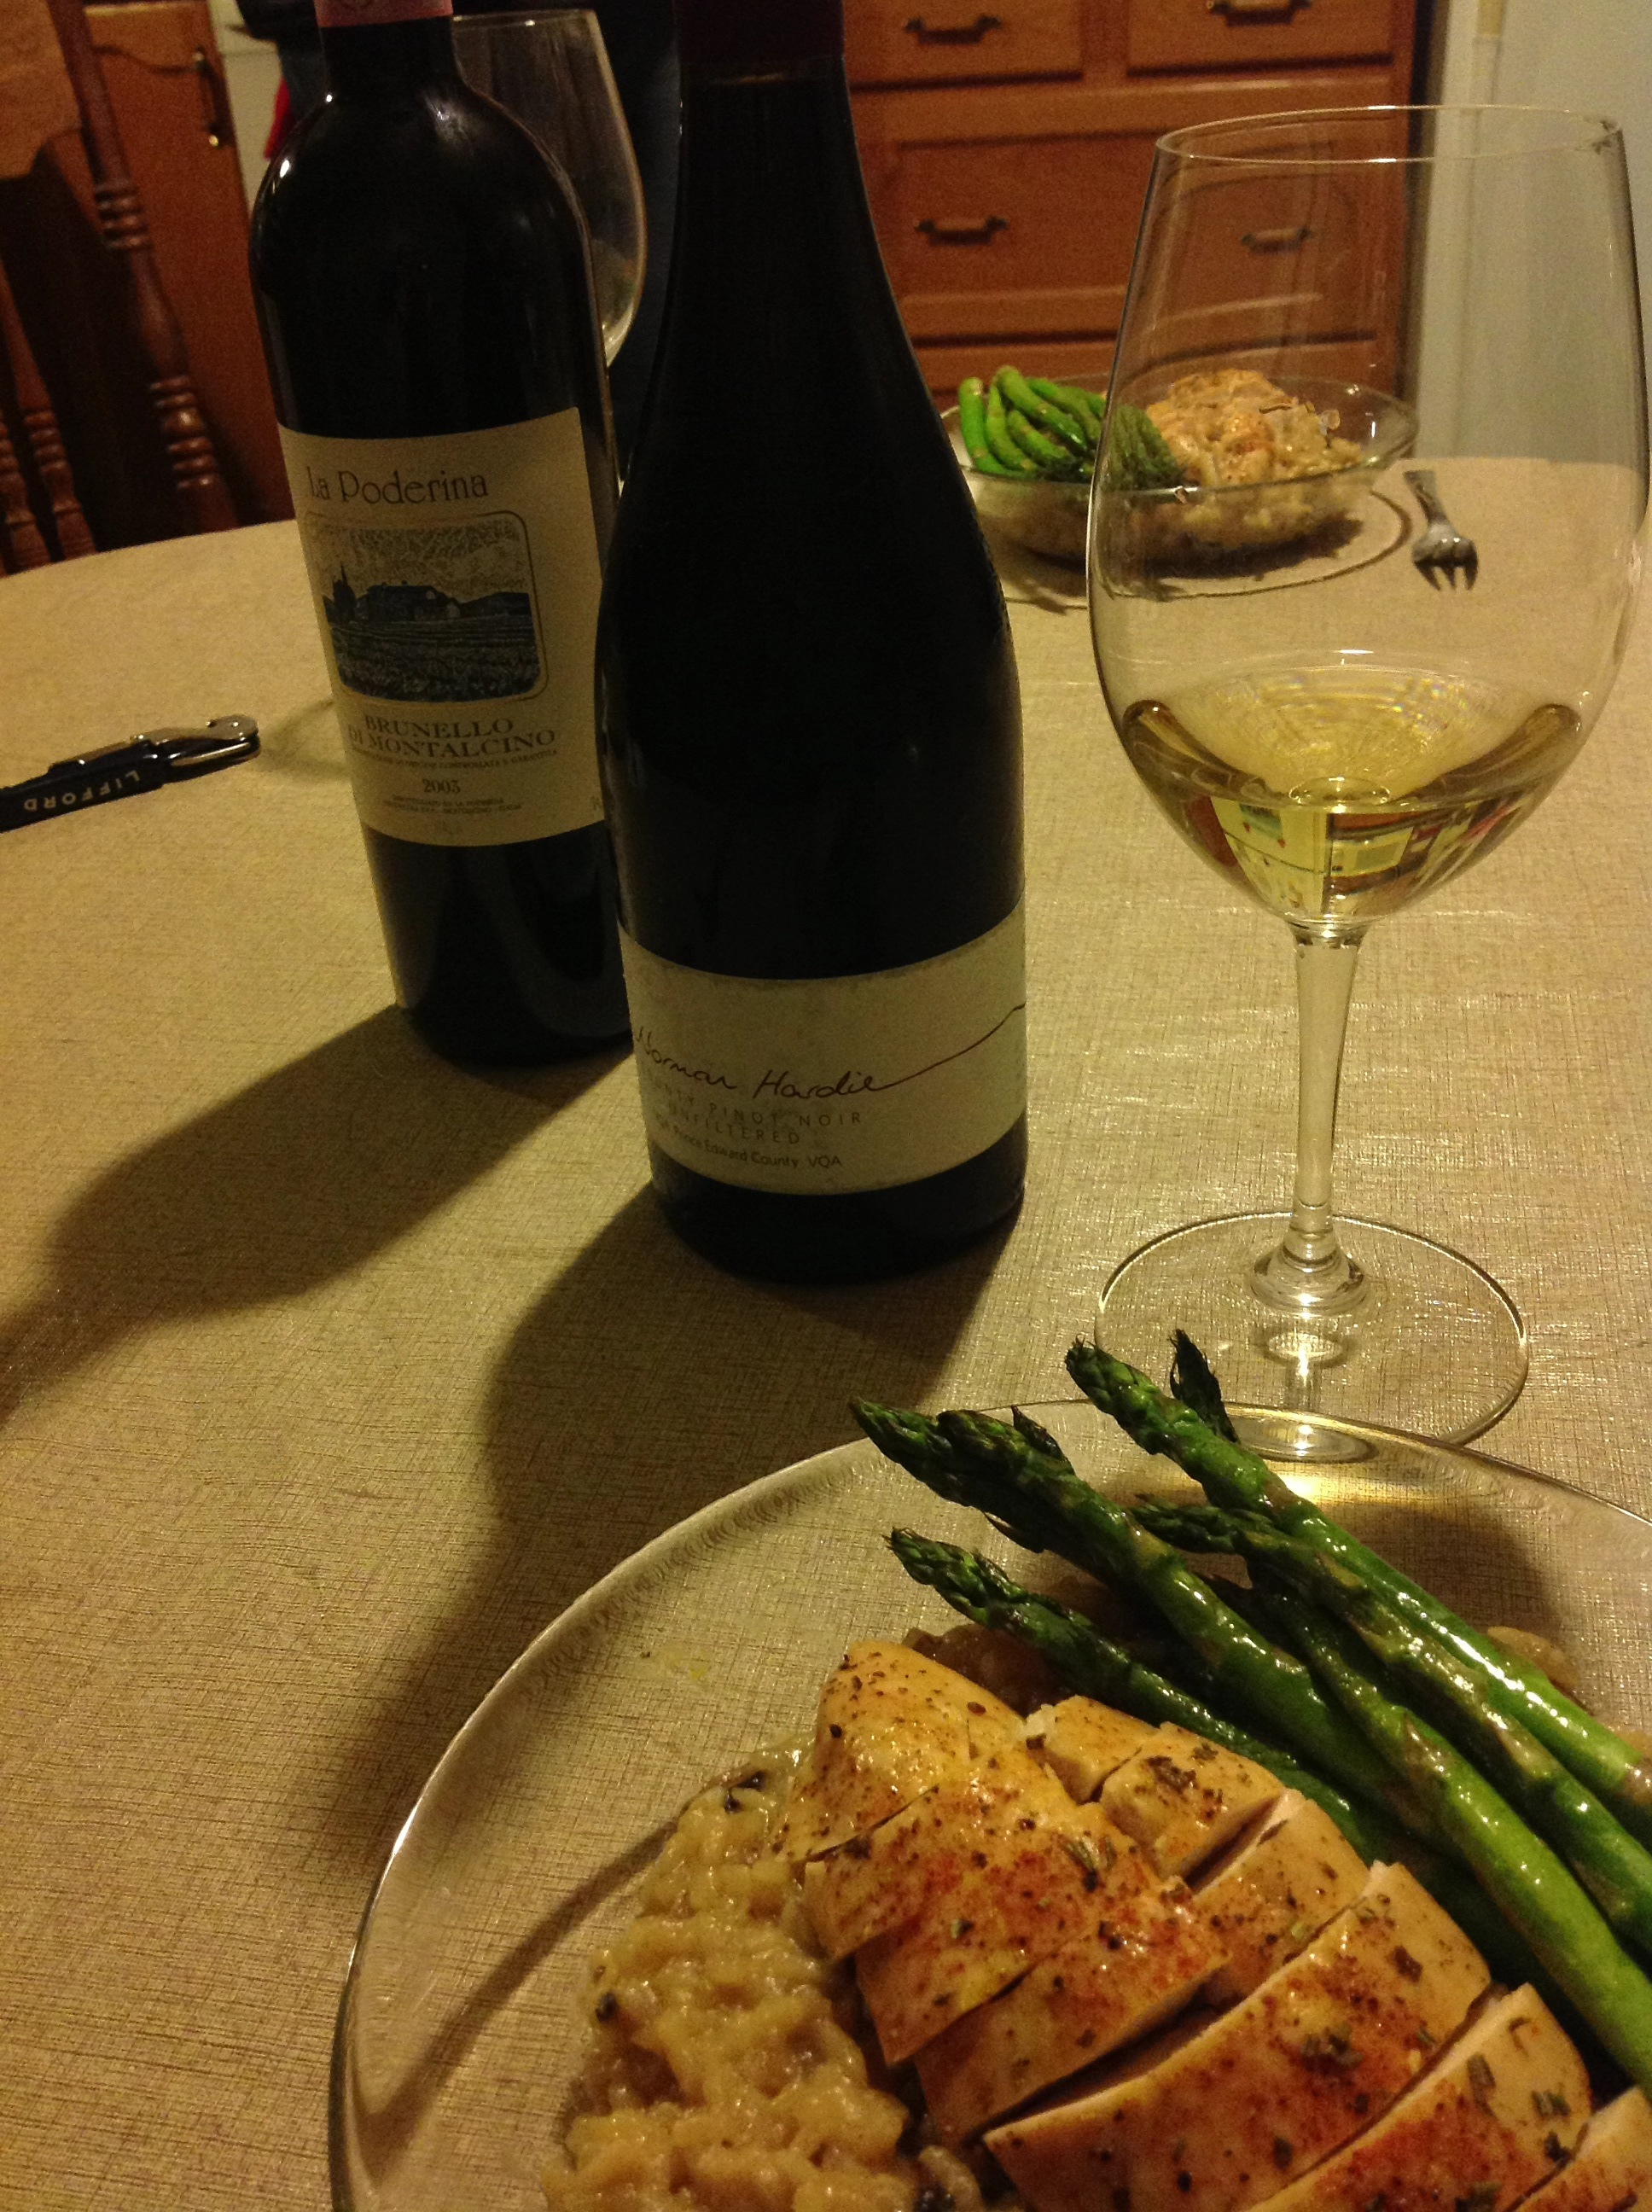 Post-hunting farm dinners: chicken and mushroom risotto and some killer wines...